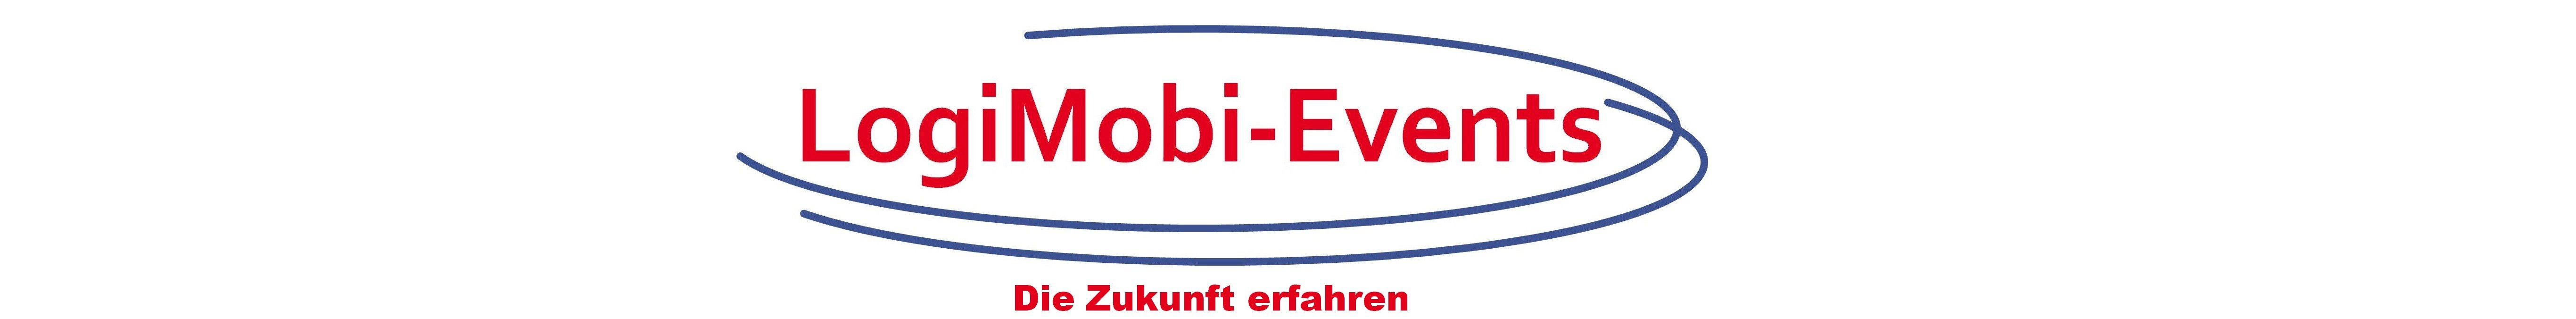 LogiMobi Events